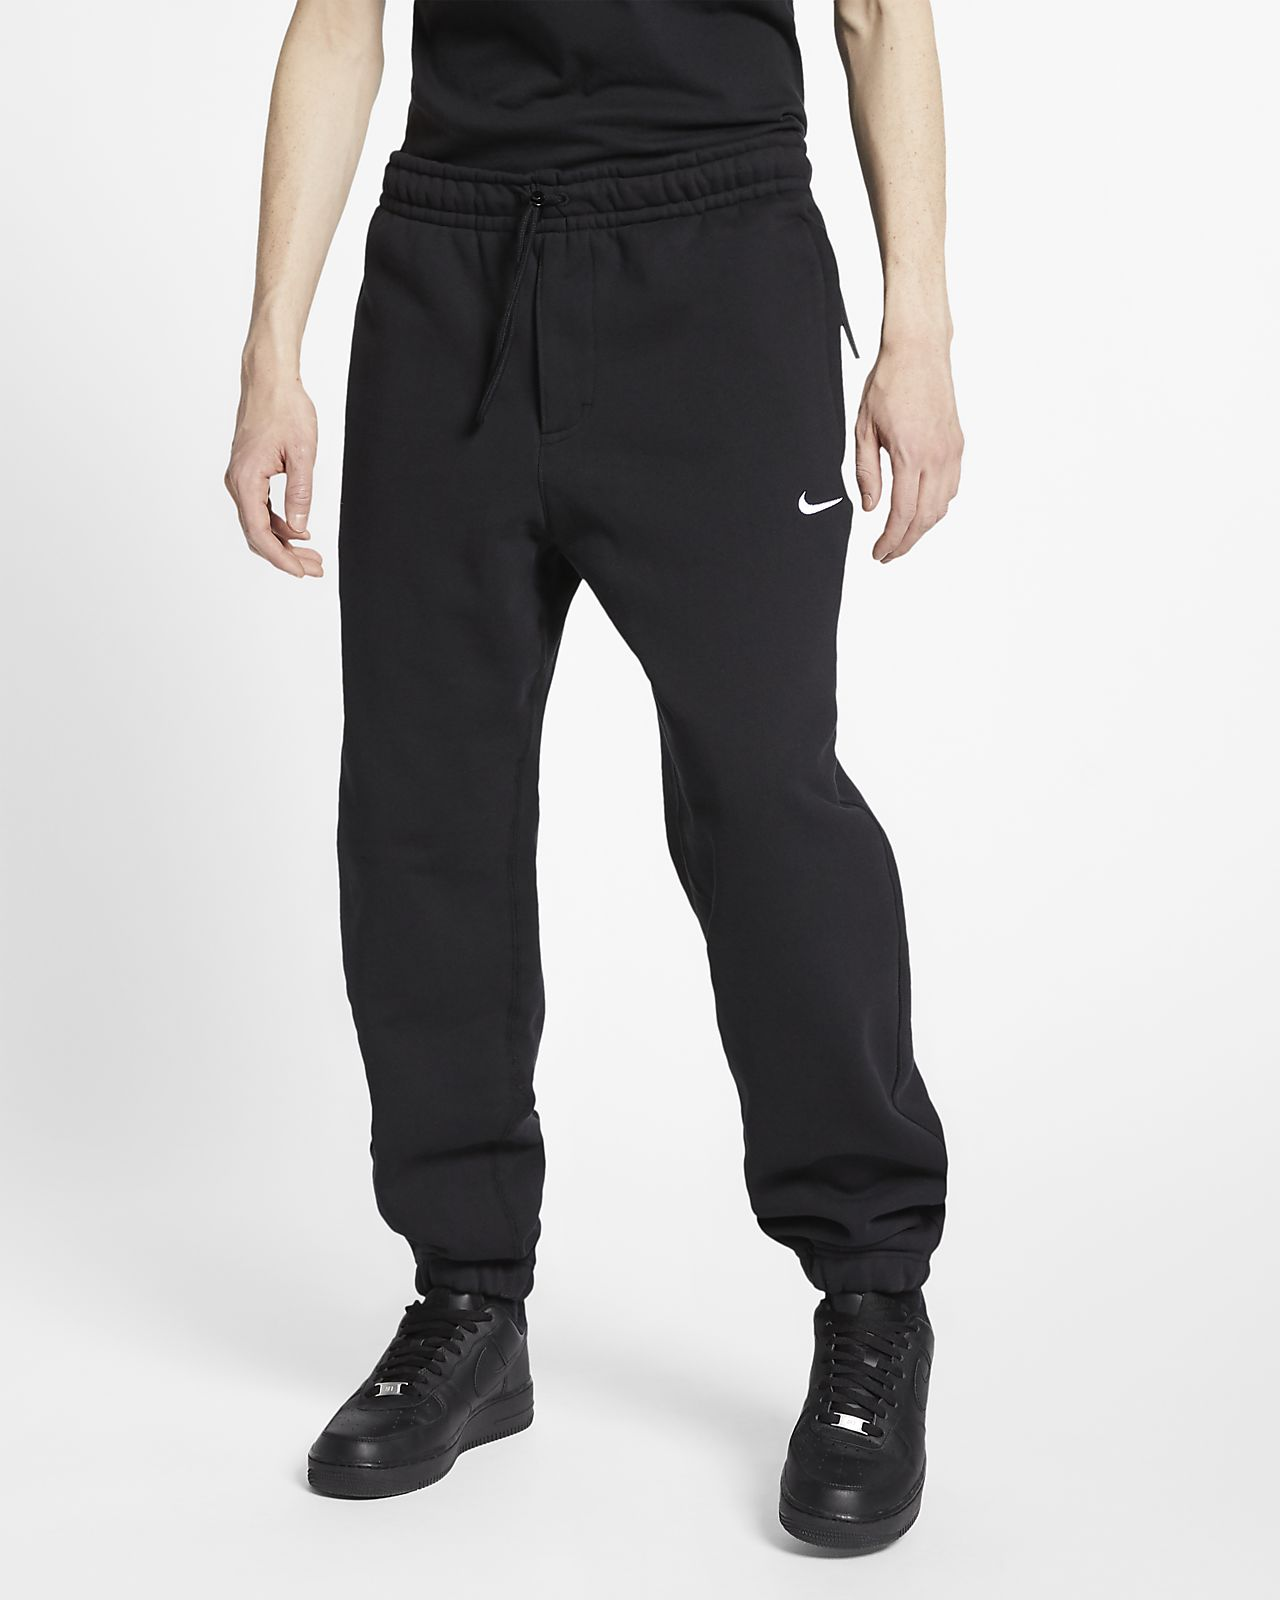 Pantaloni in fleece NikeLab Collection - Uomo